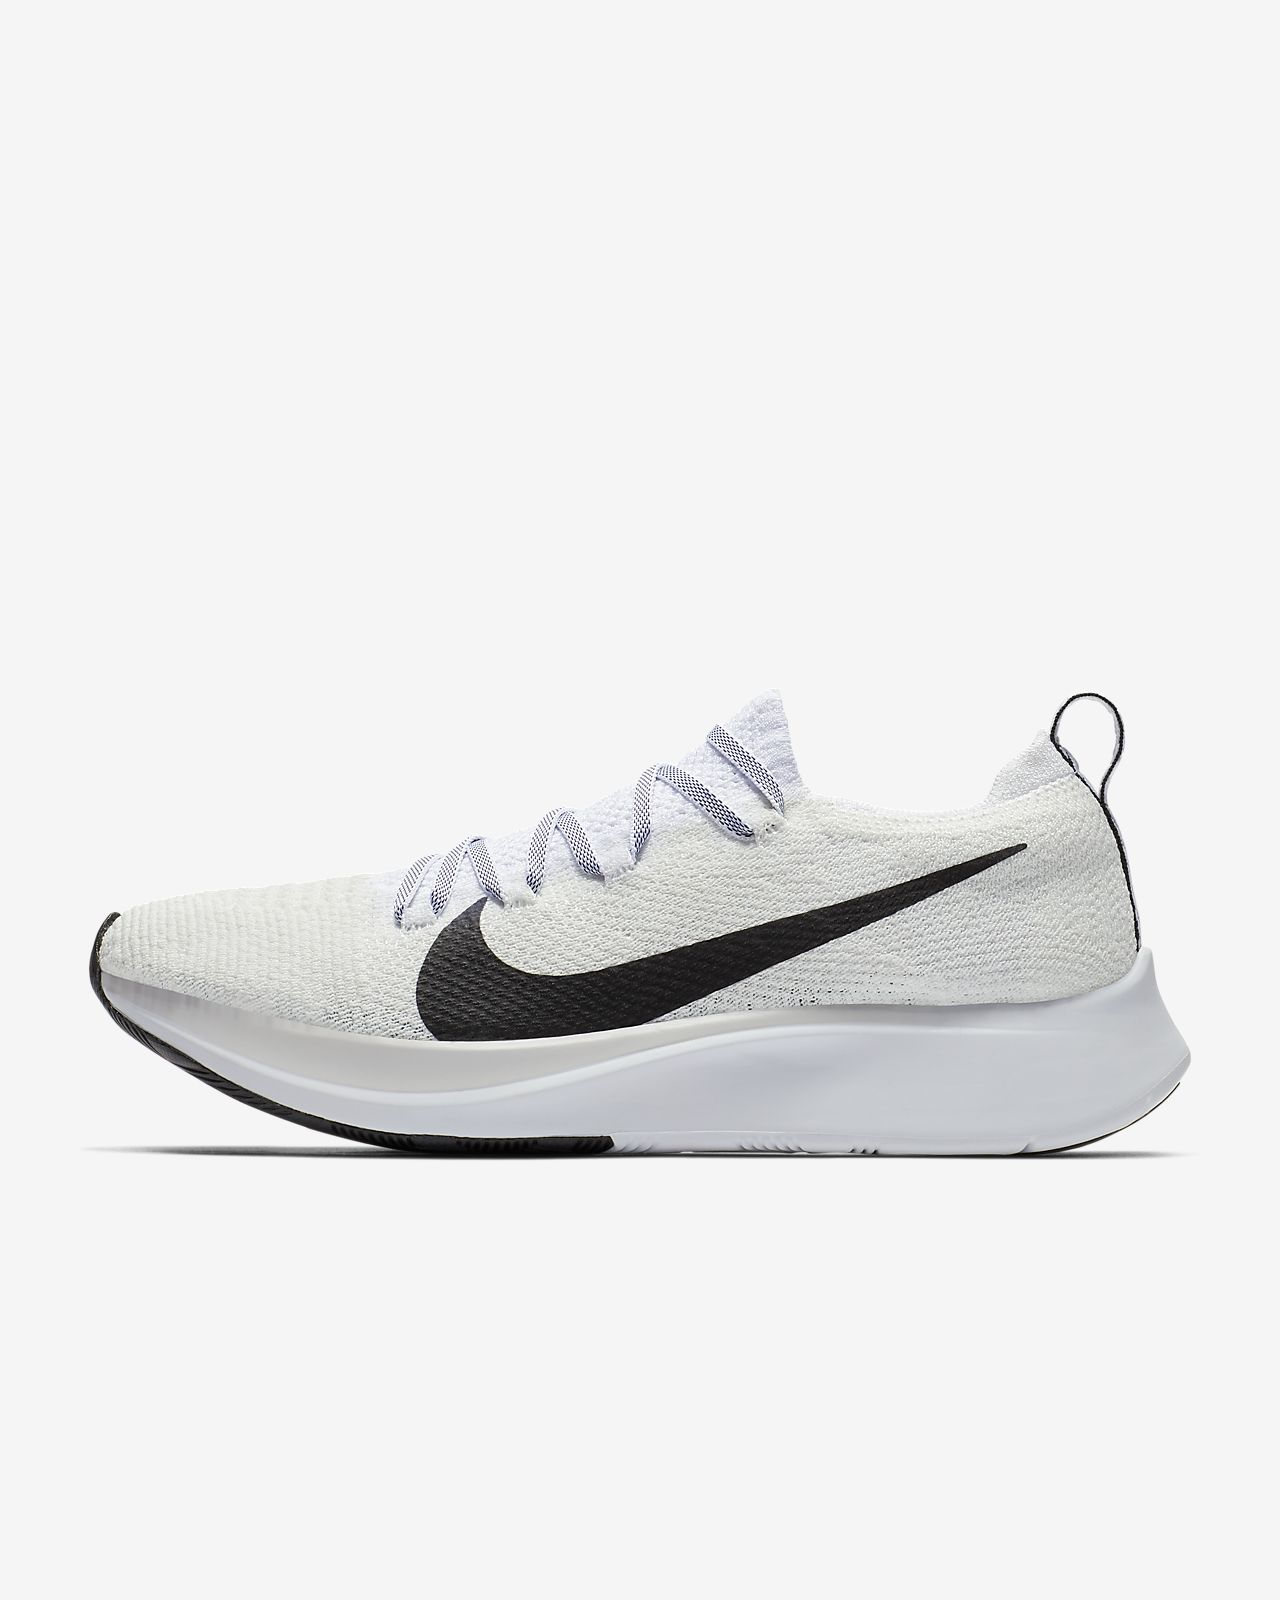 cb32b7b972 Nike Zoom Fly Flyknit Women s Running Shoe. Nike.com NO